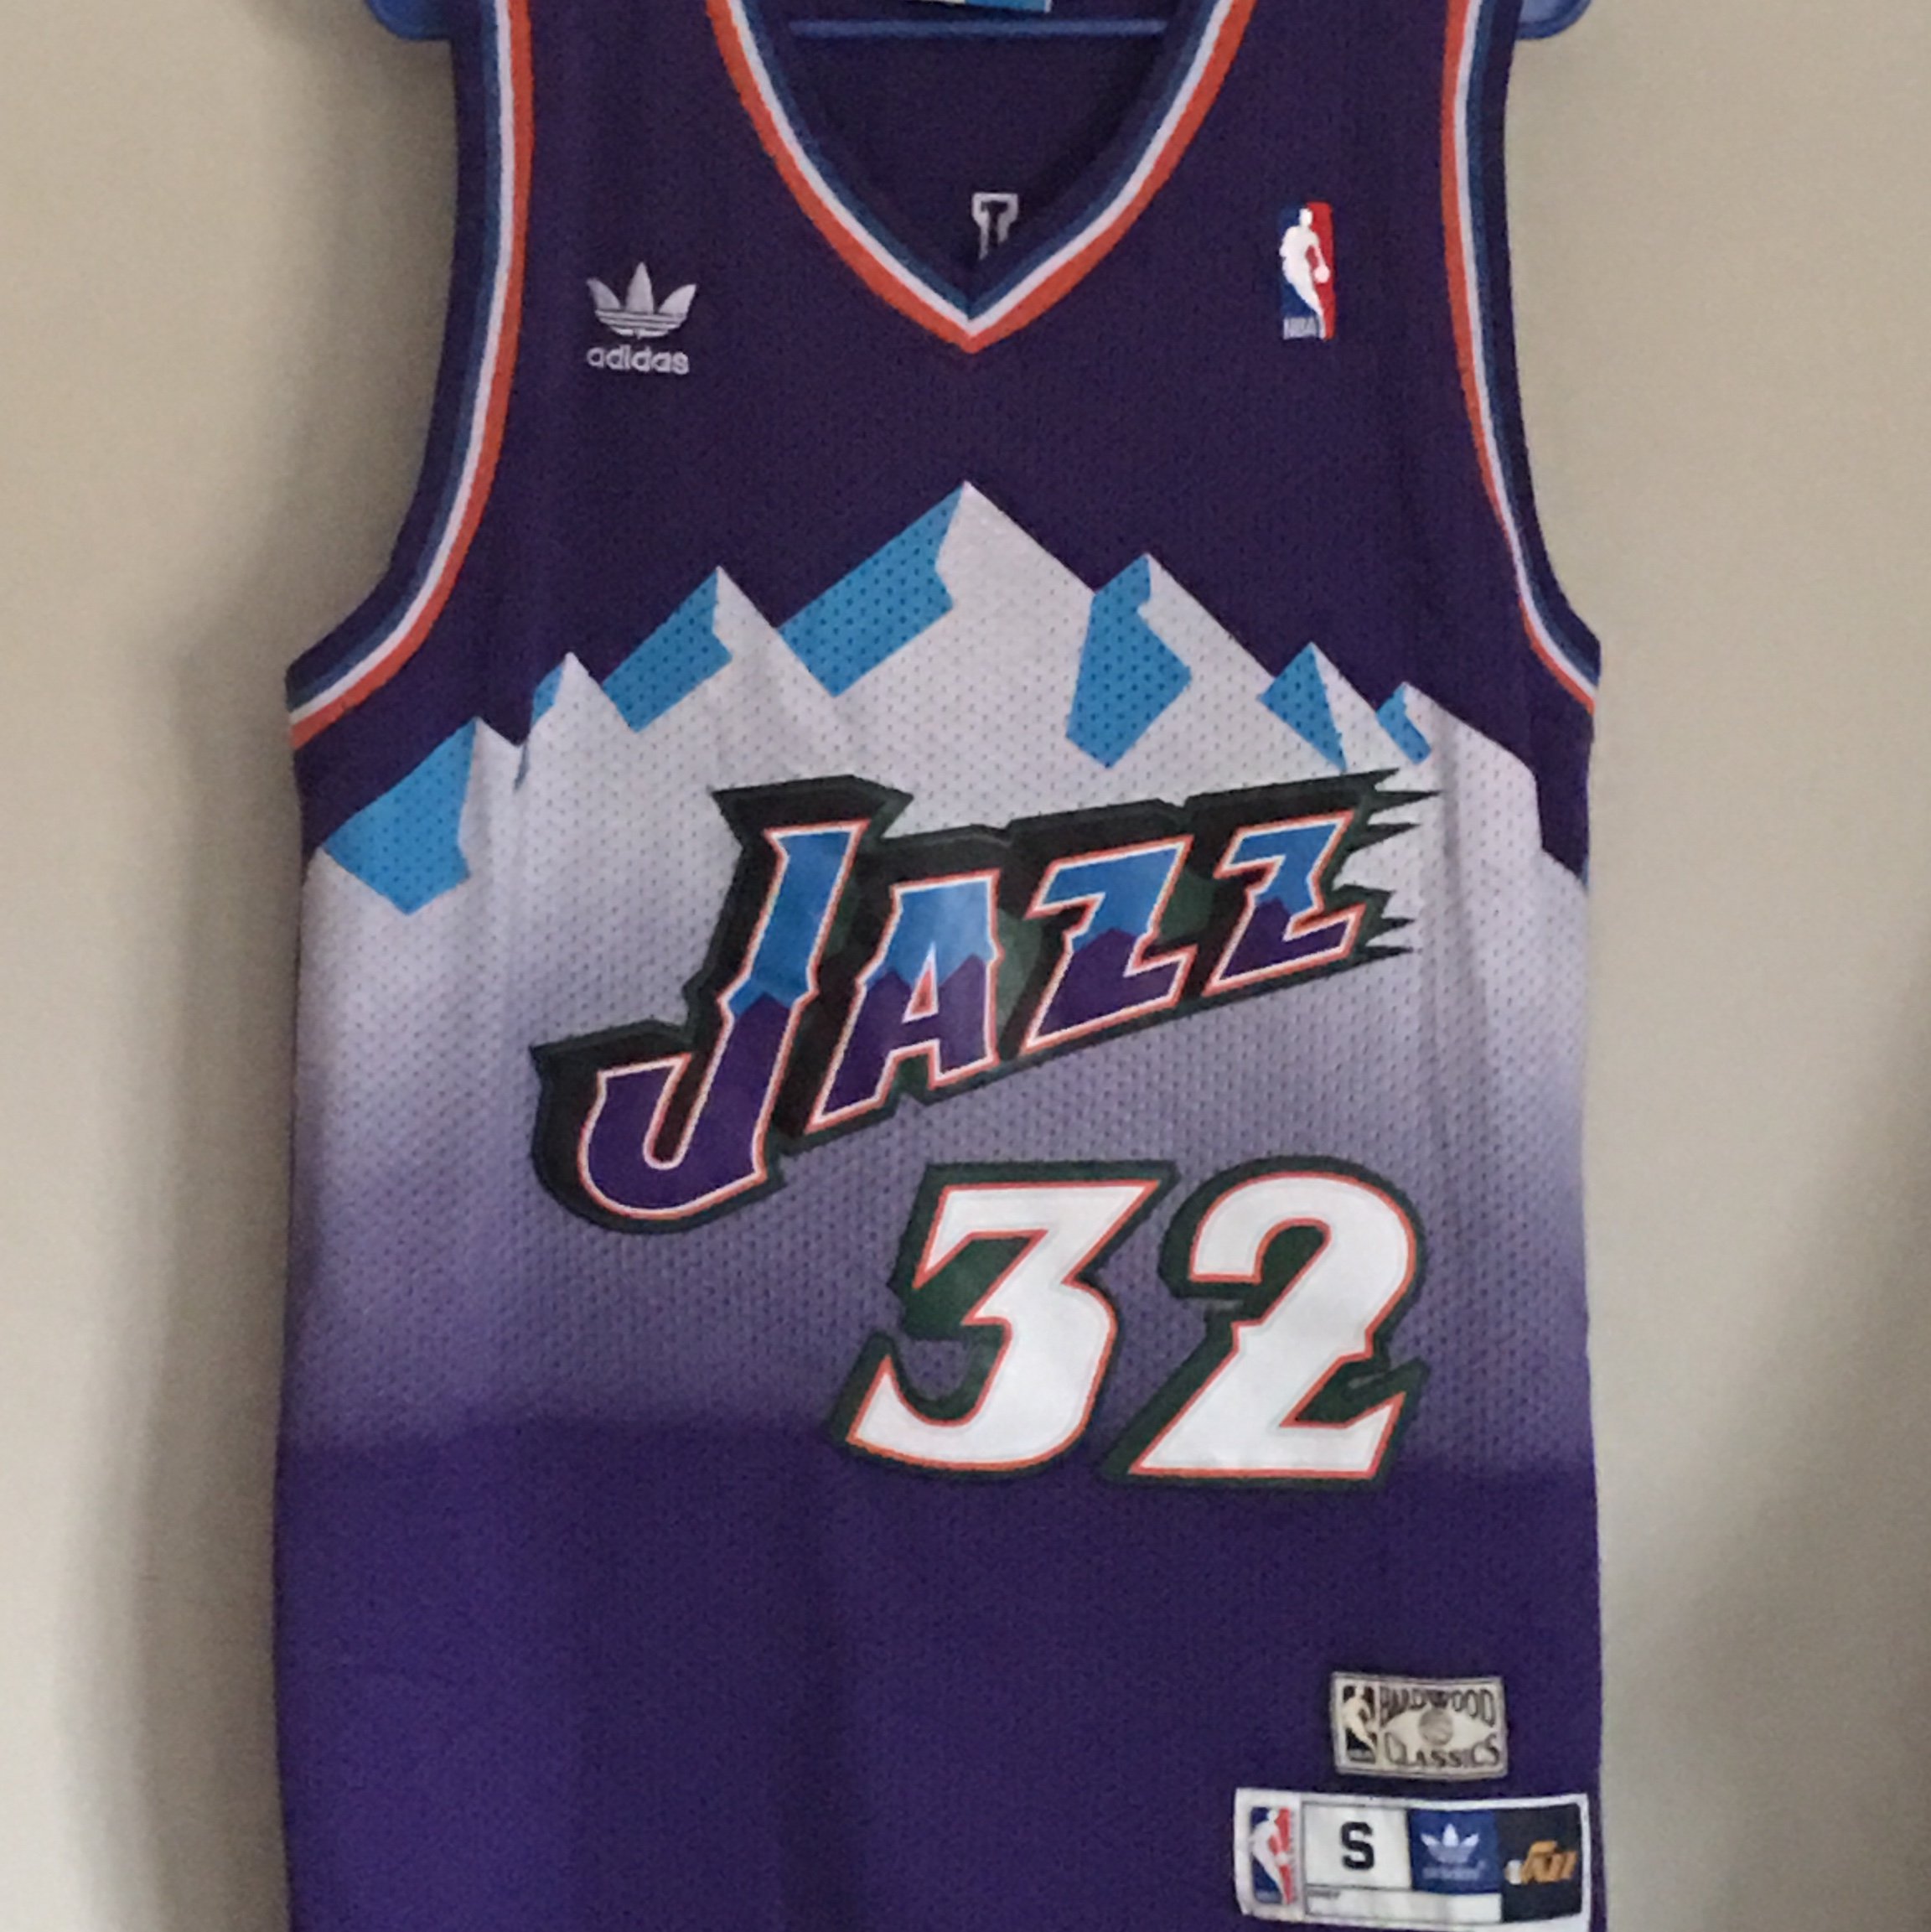 check out 36a0d 63ddf Size Small Adidas Utah Jazz #32 Karl Malone... - Depop